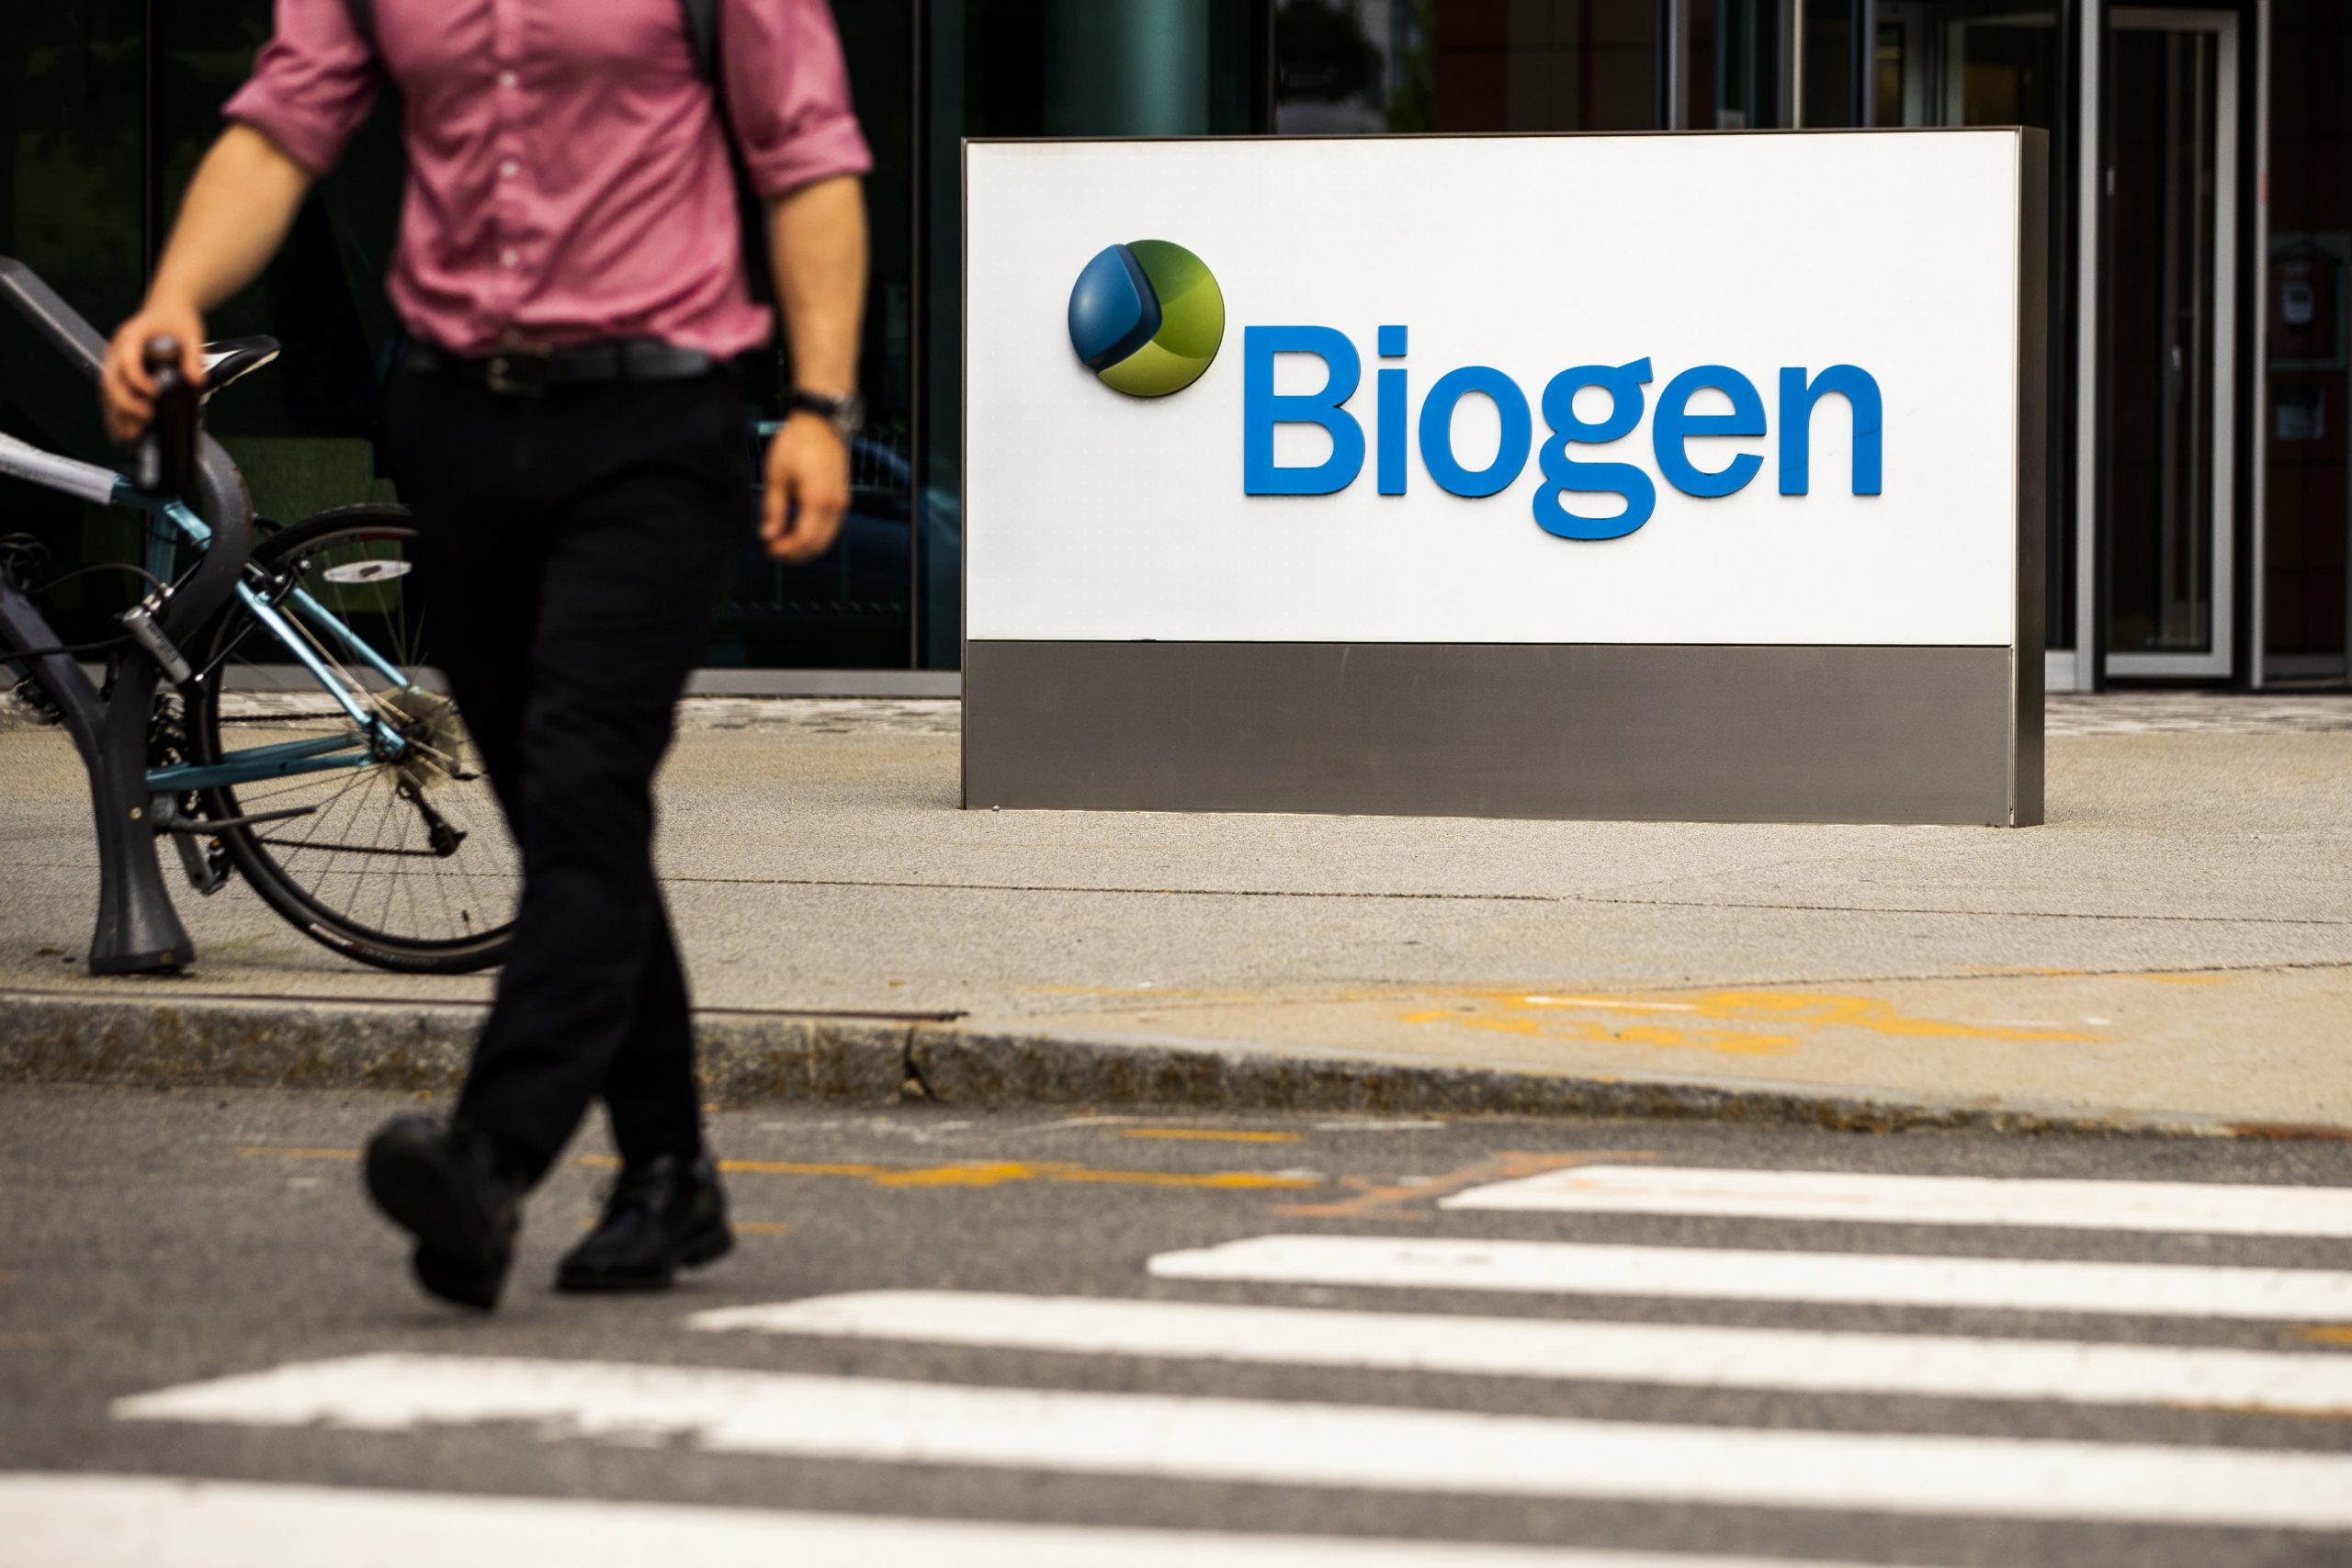 Biogen's Alzheimer's drug could cost Medicare billions of dollars a year: report